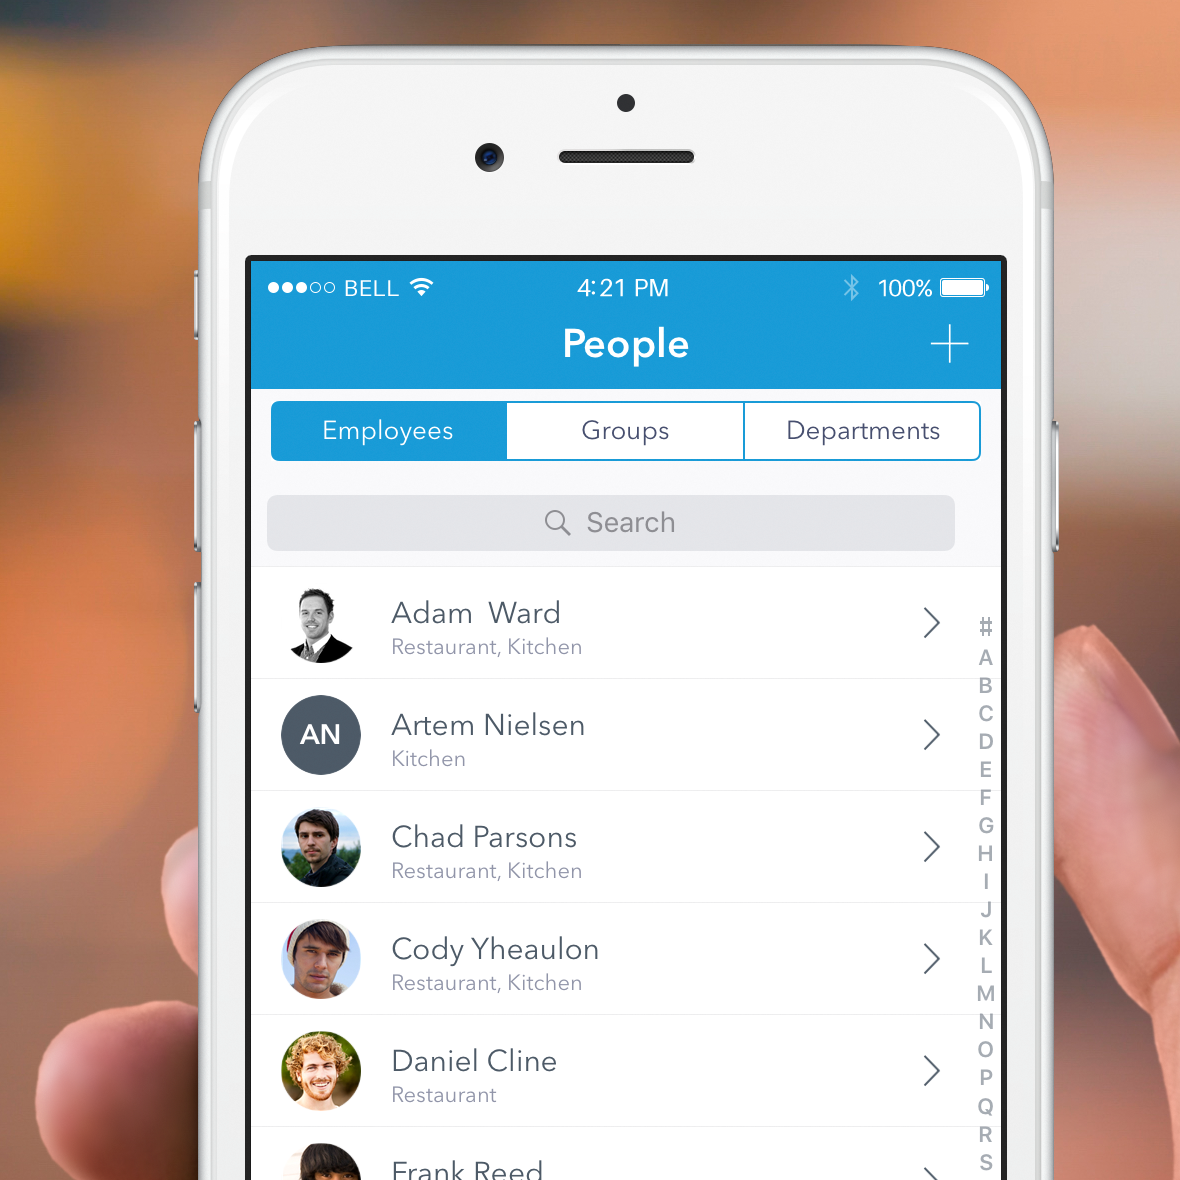 App: Easy access to employee contact information